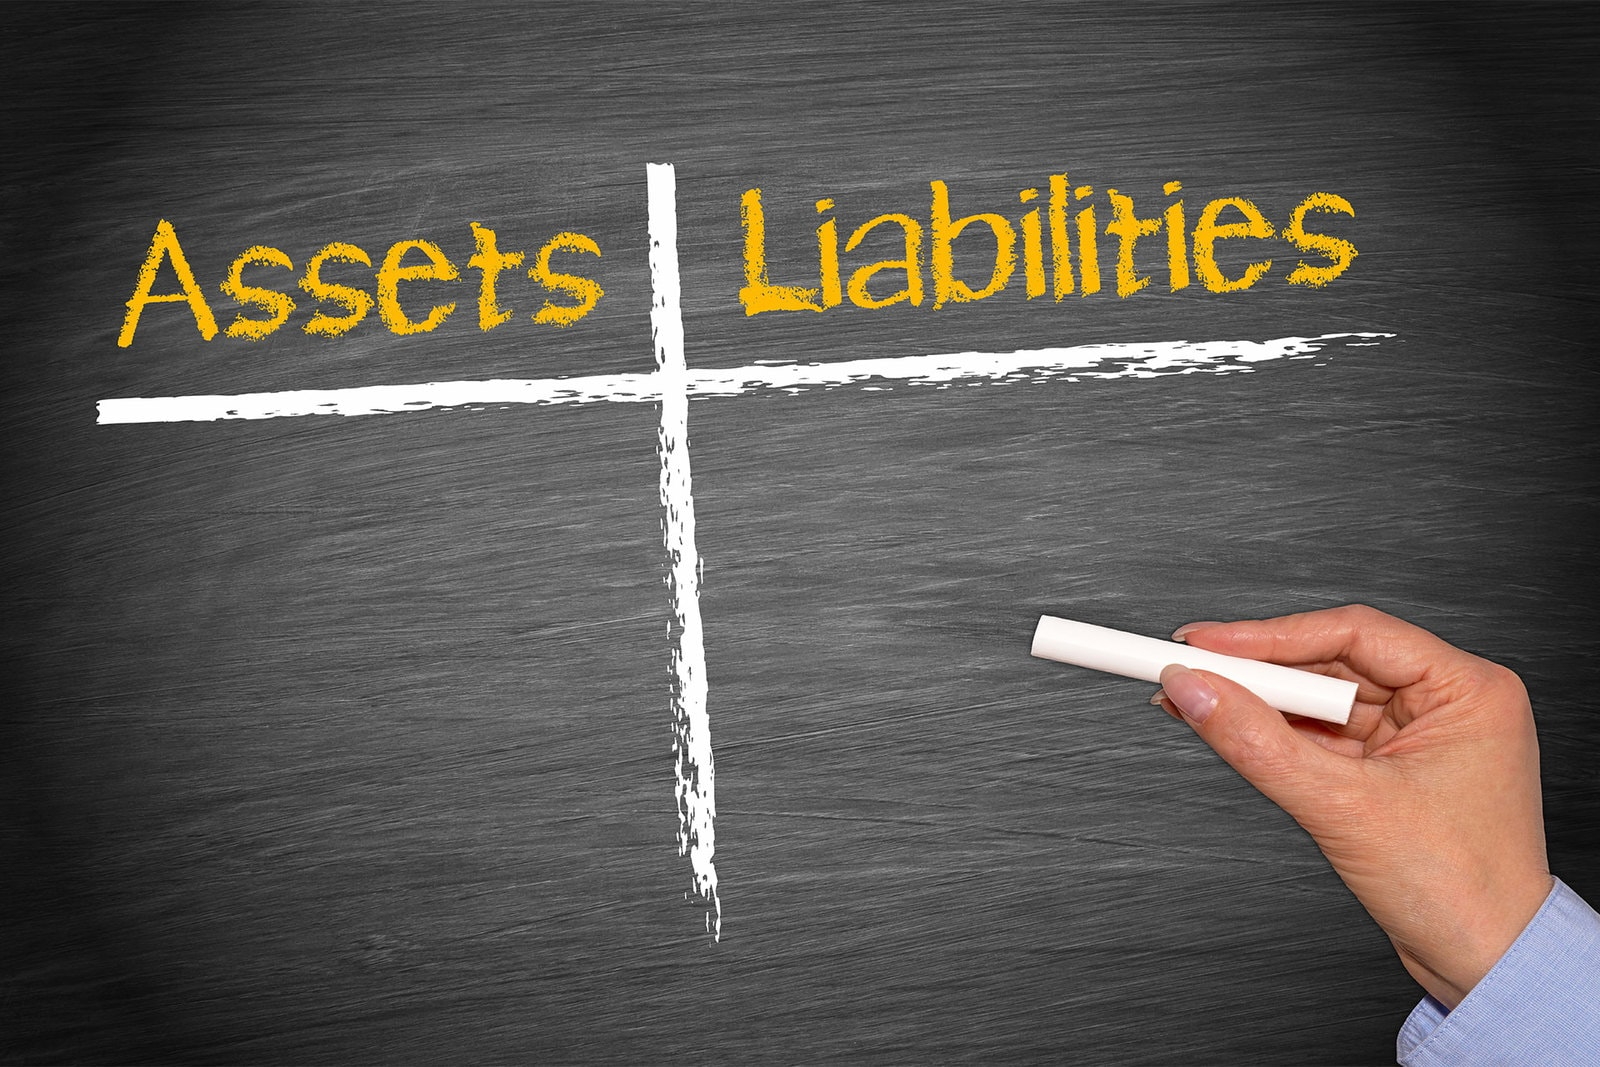 Assets and liabilities inventory